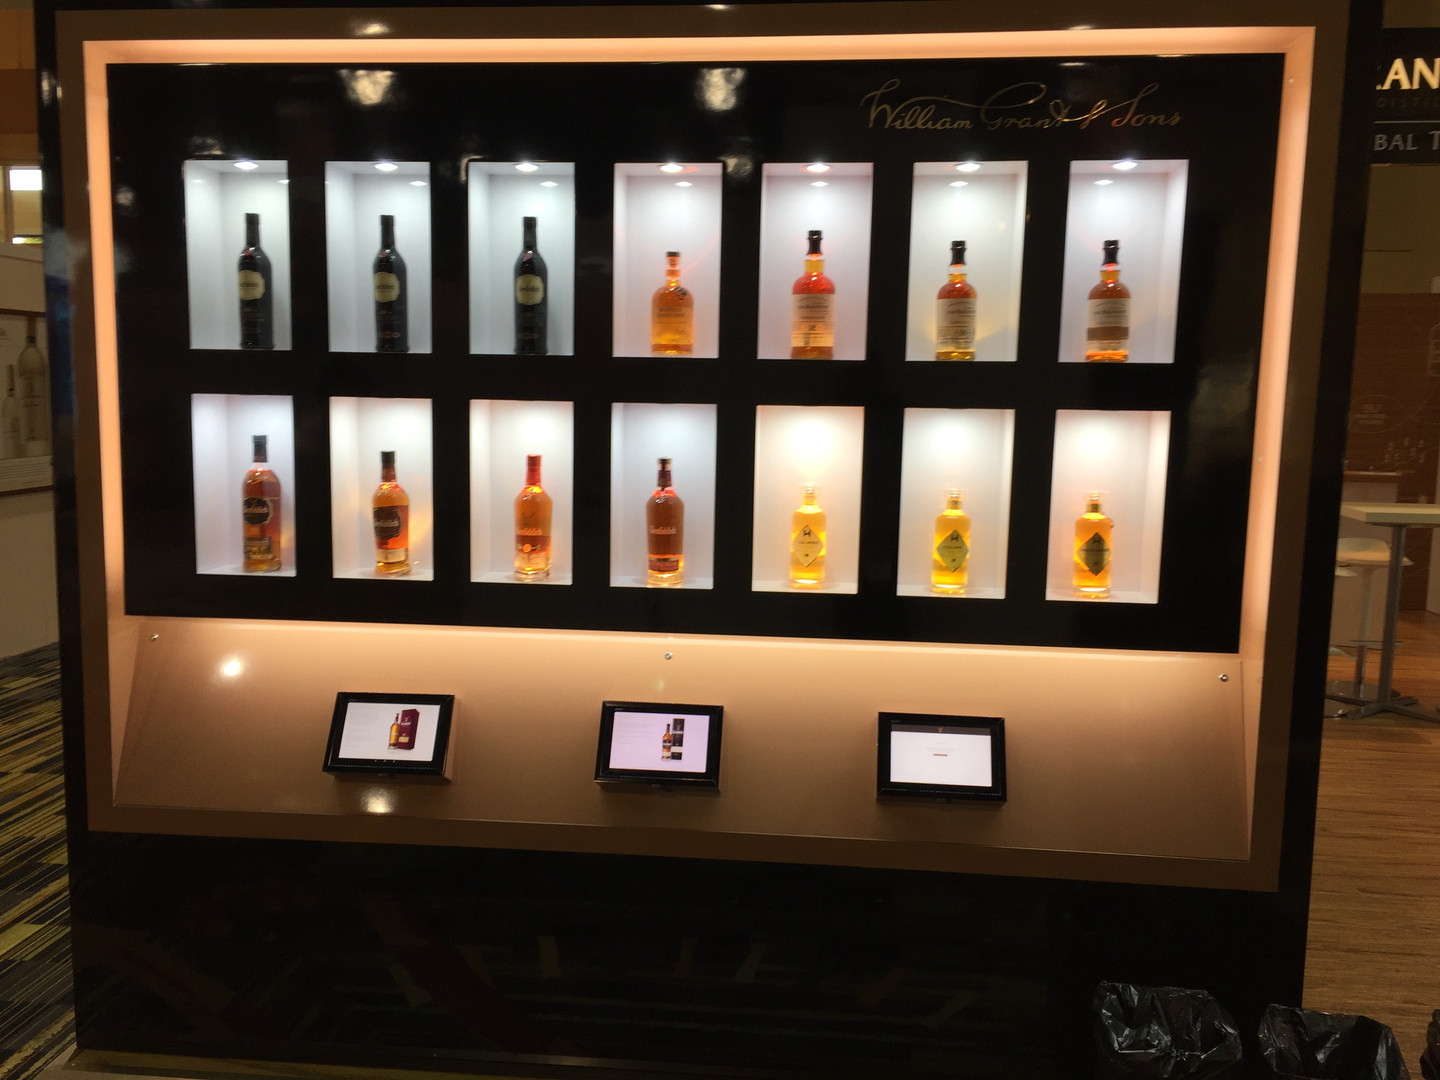 Showcasing William Grant Whiskeys with touch screen technology.